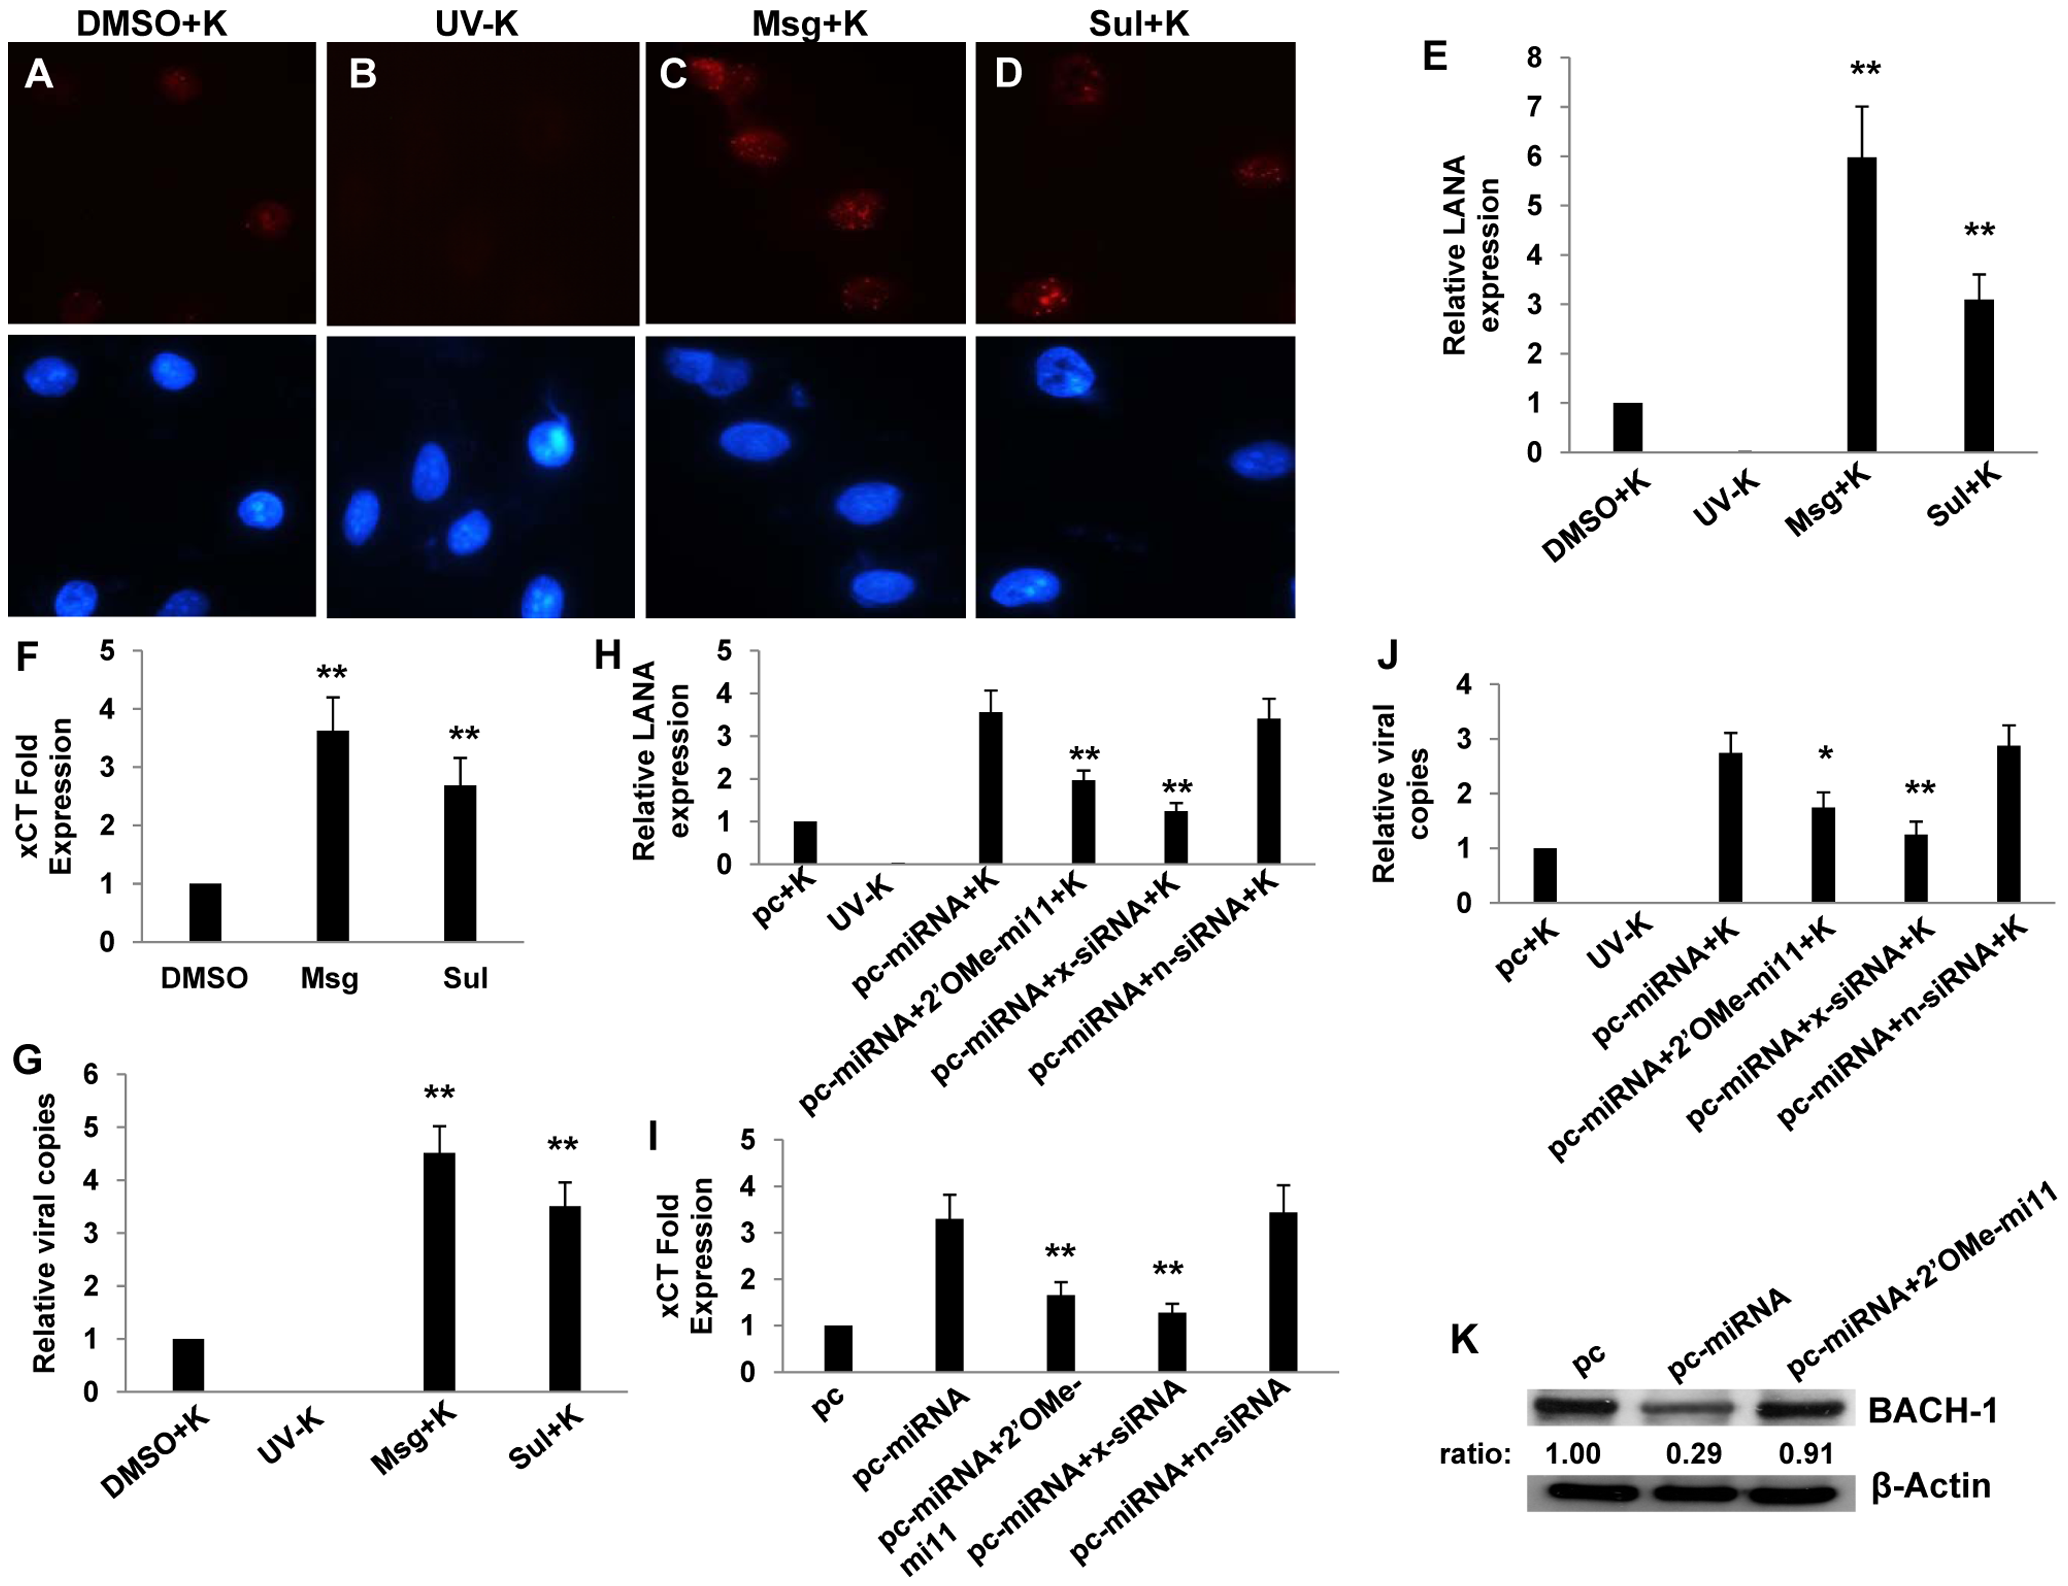 miR-K12-11 suppresses BACH-1 expression and increases endothelial cell susceptibility to KSHV through upregulation of xCT.